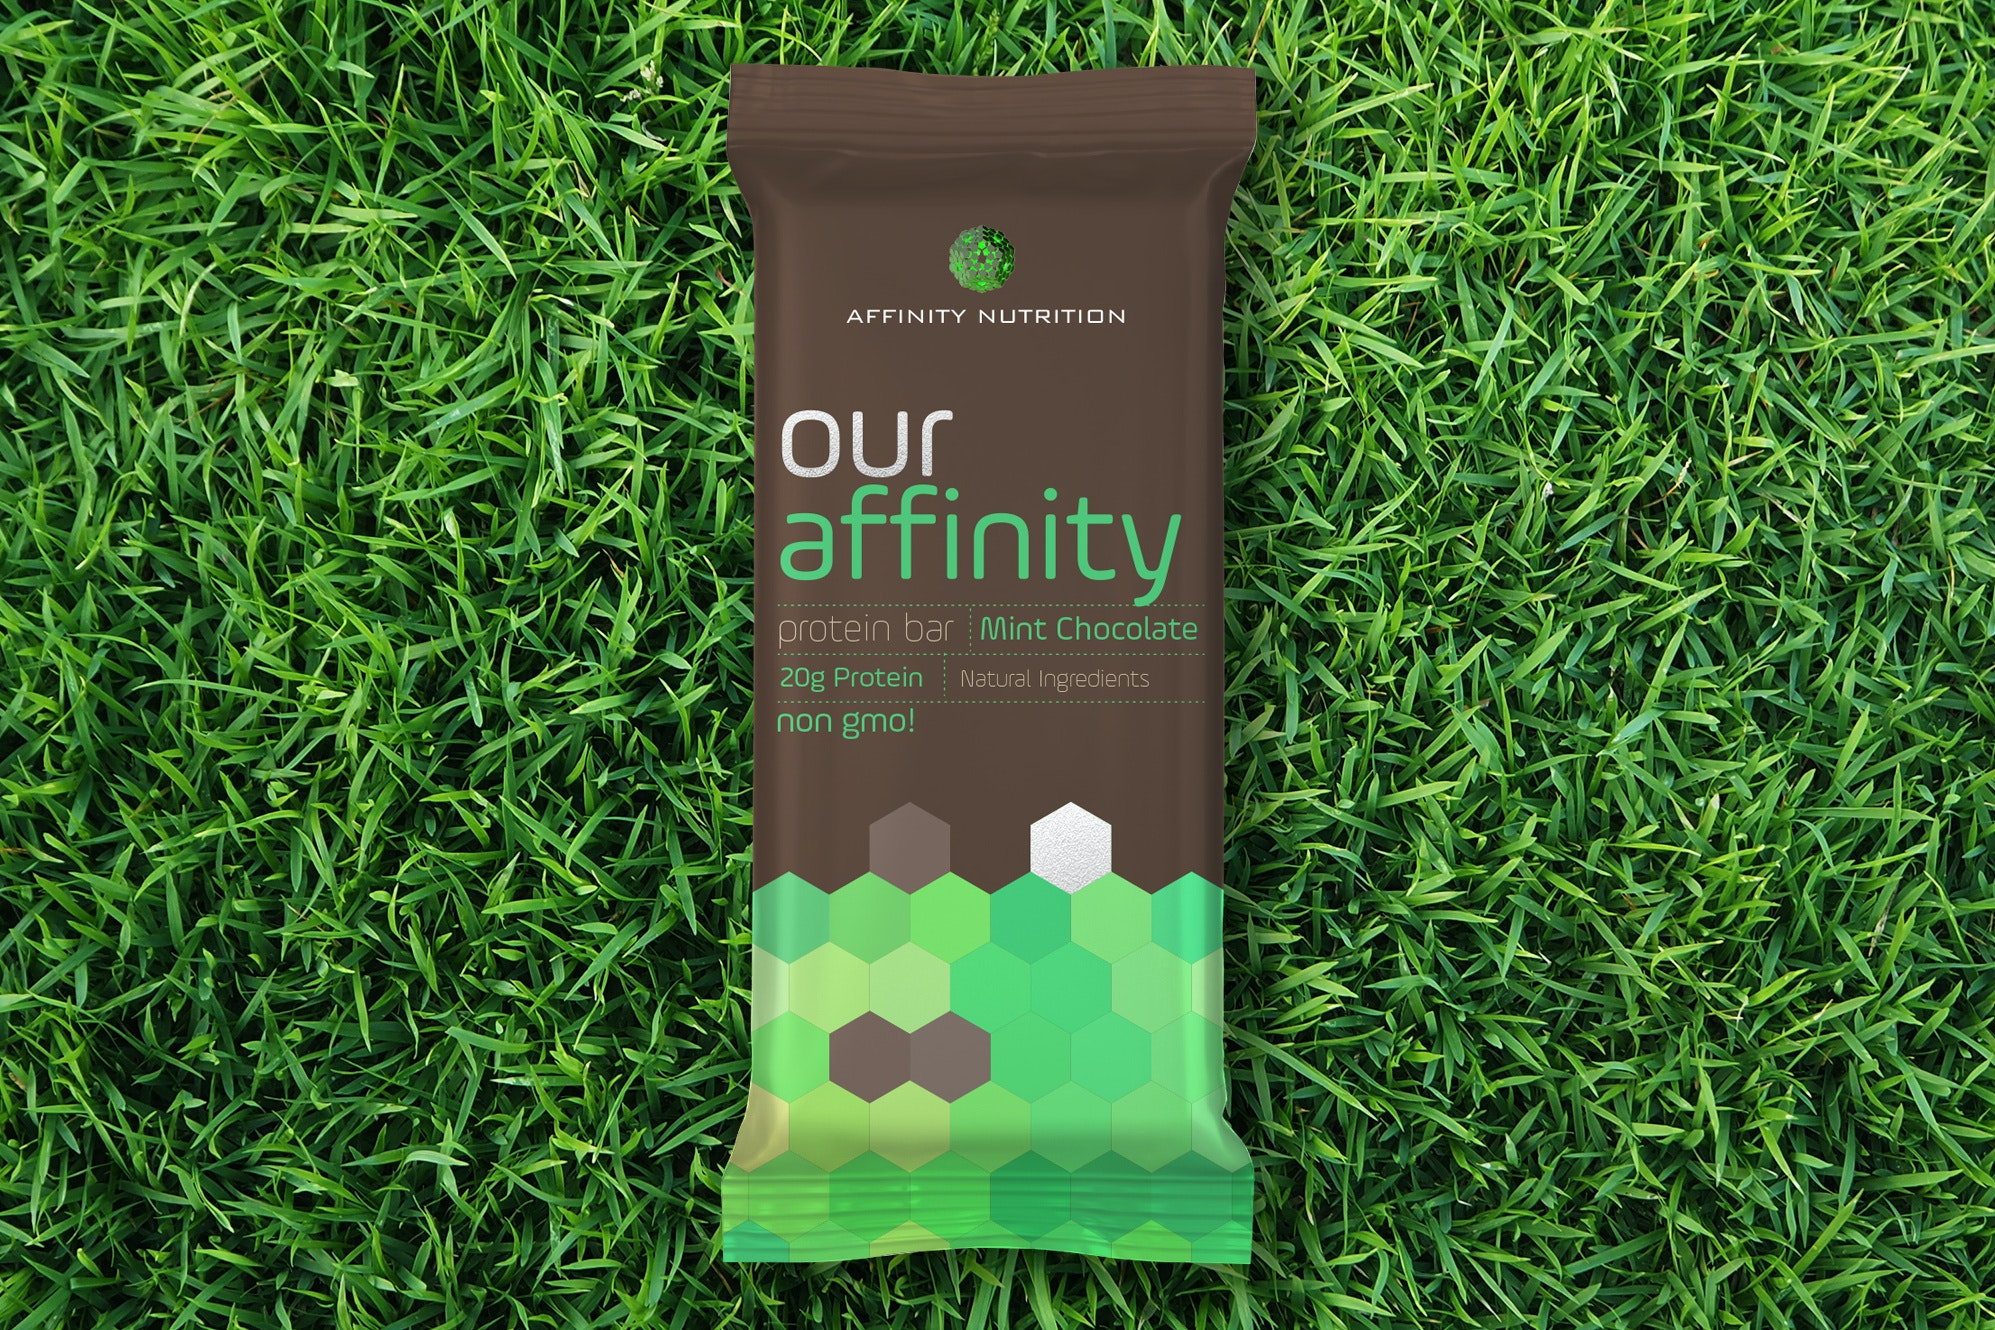 Affinity Nutrition protein bar